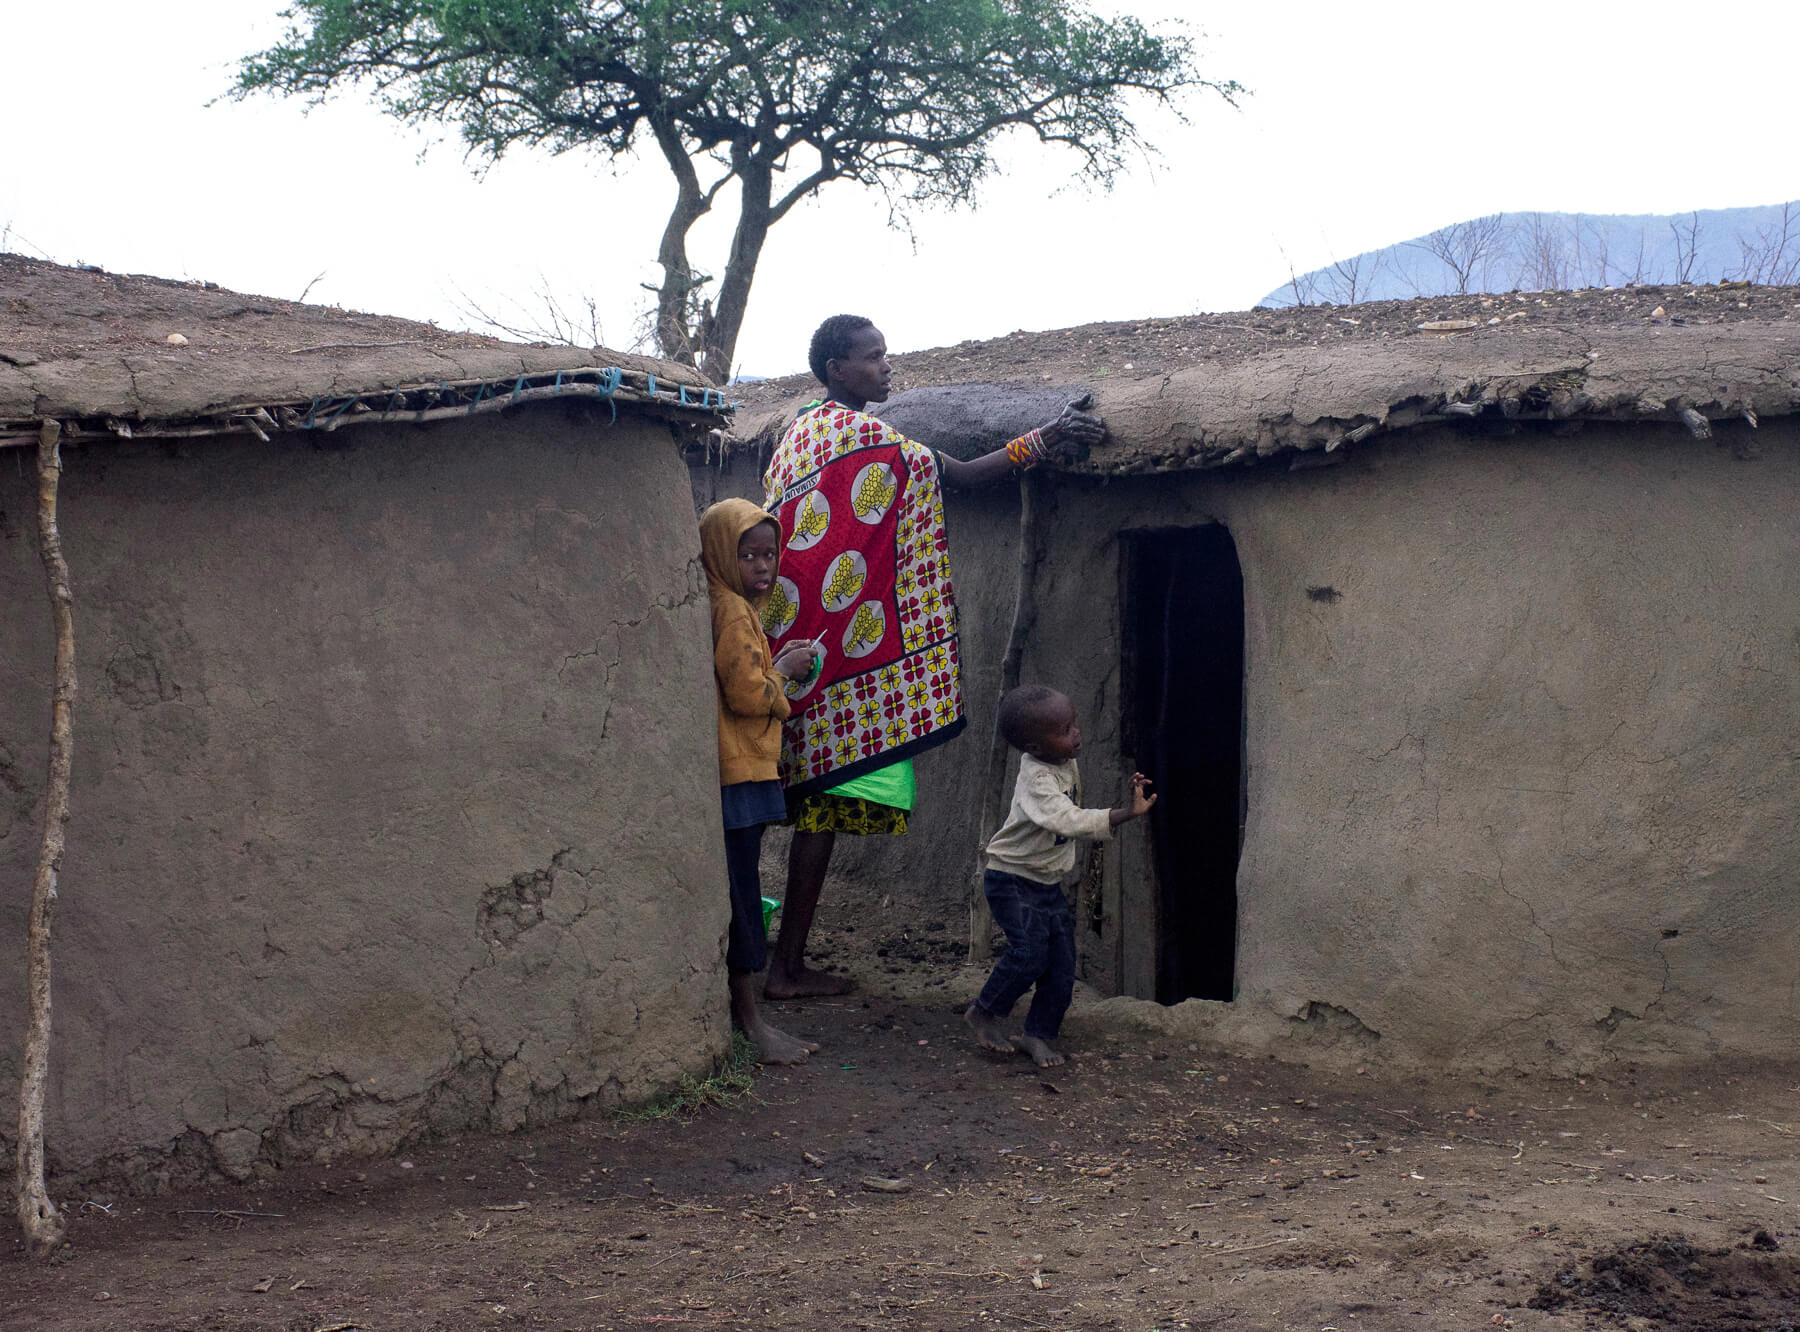 A mother in a Maasai village fixing her house with mud, with her children helping too